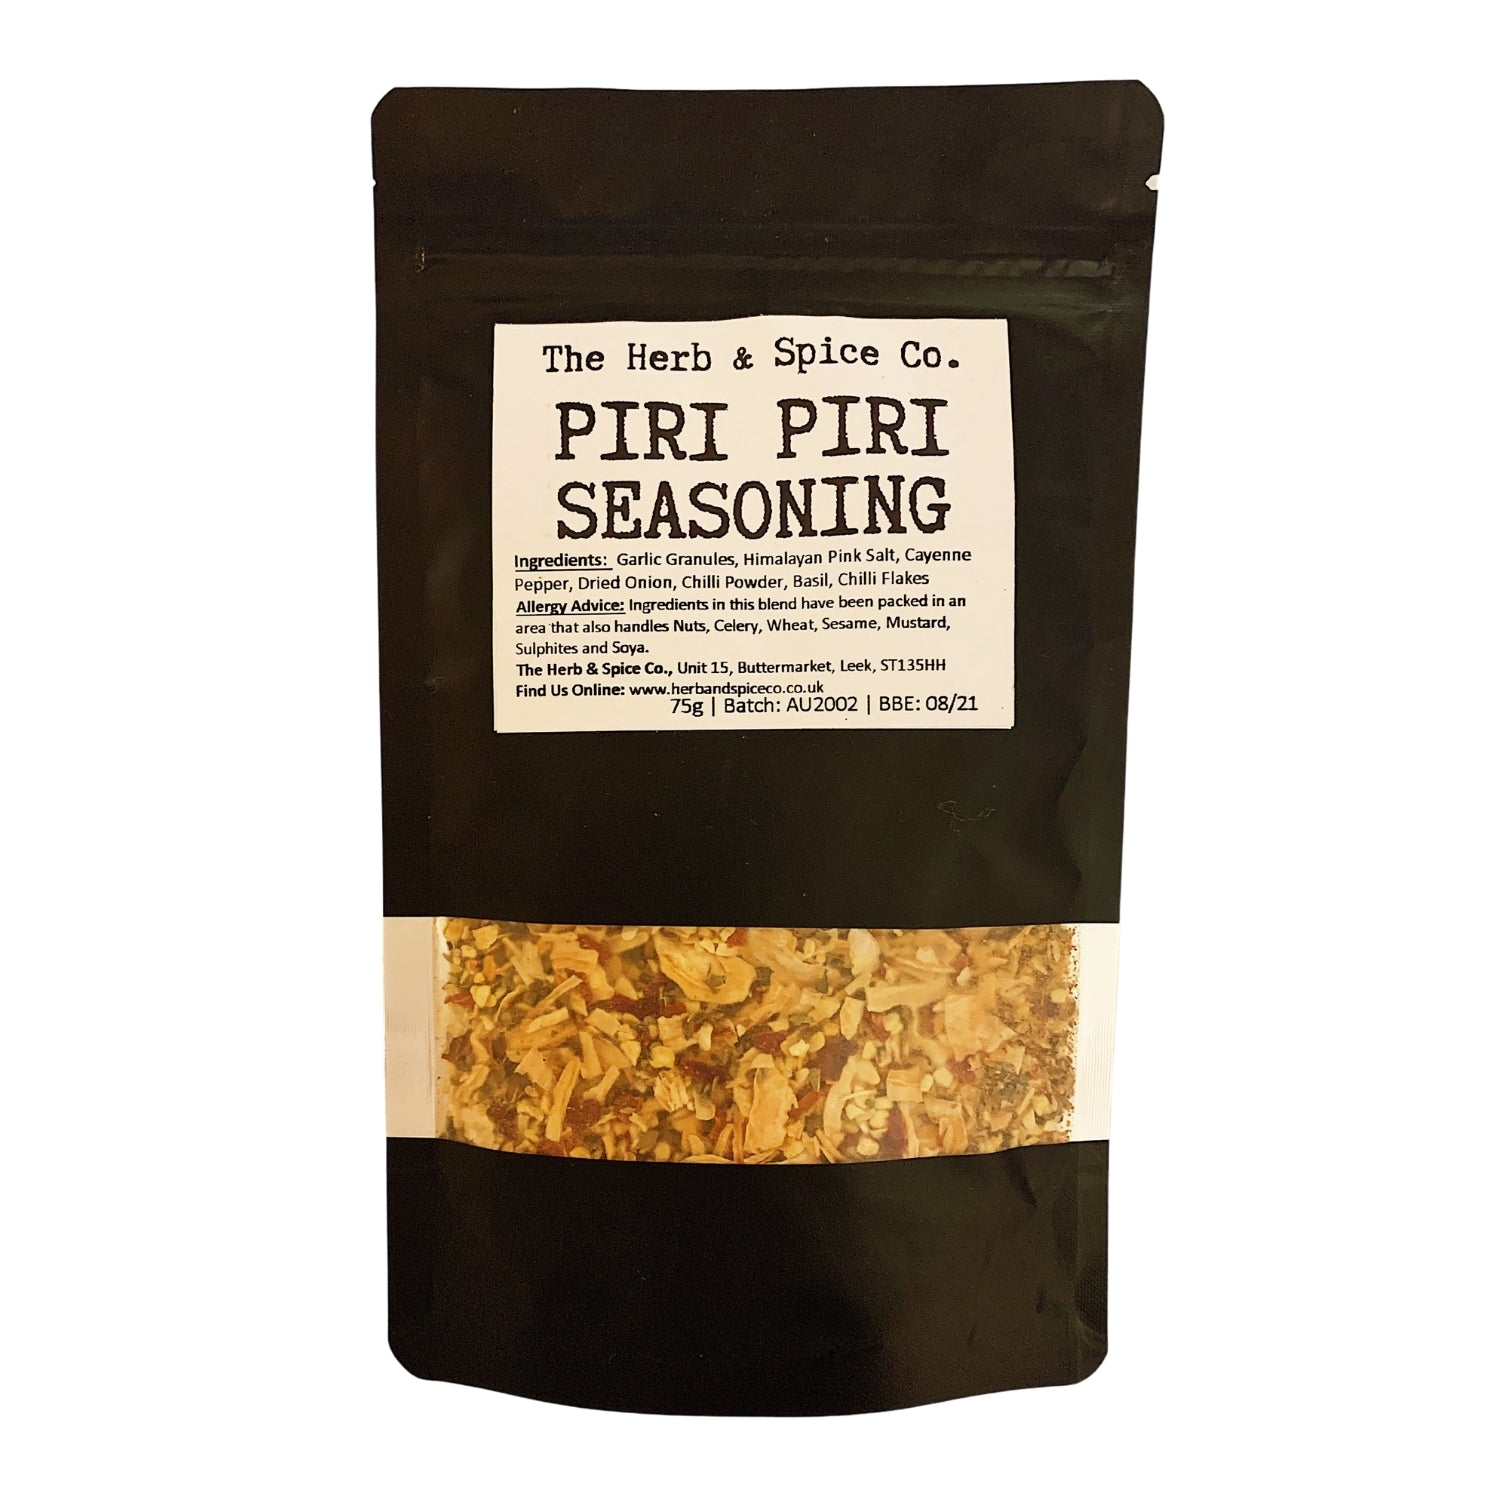 Piri Piri Spice Blend Piri Seasoning The Herb & Spice Co.